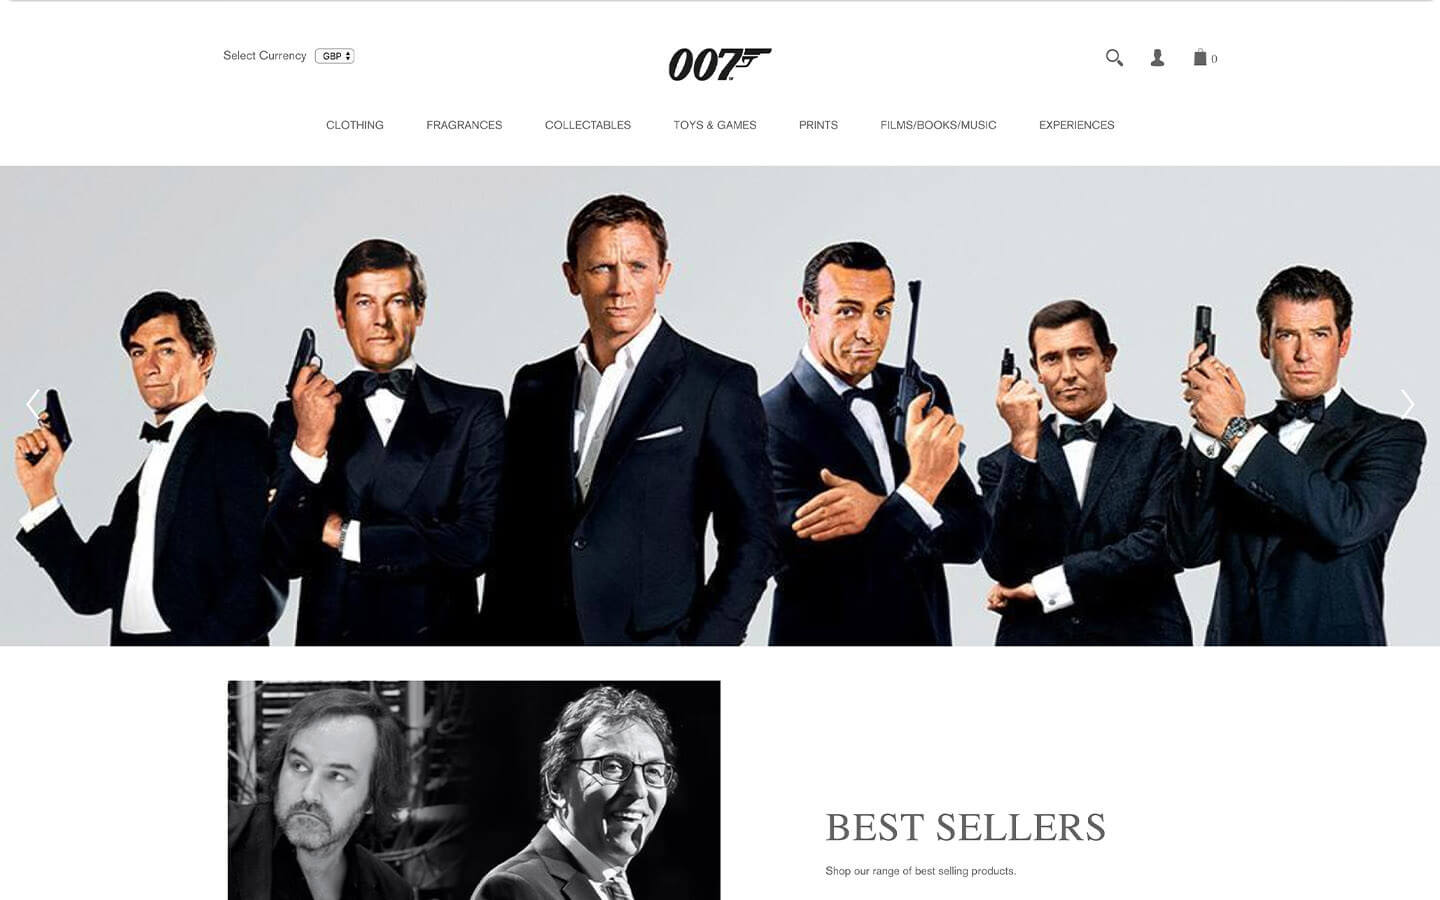 james bond 007 store homepage